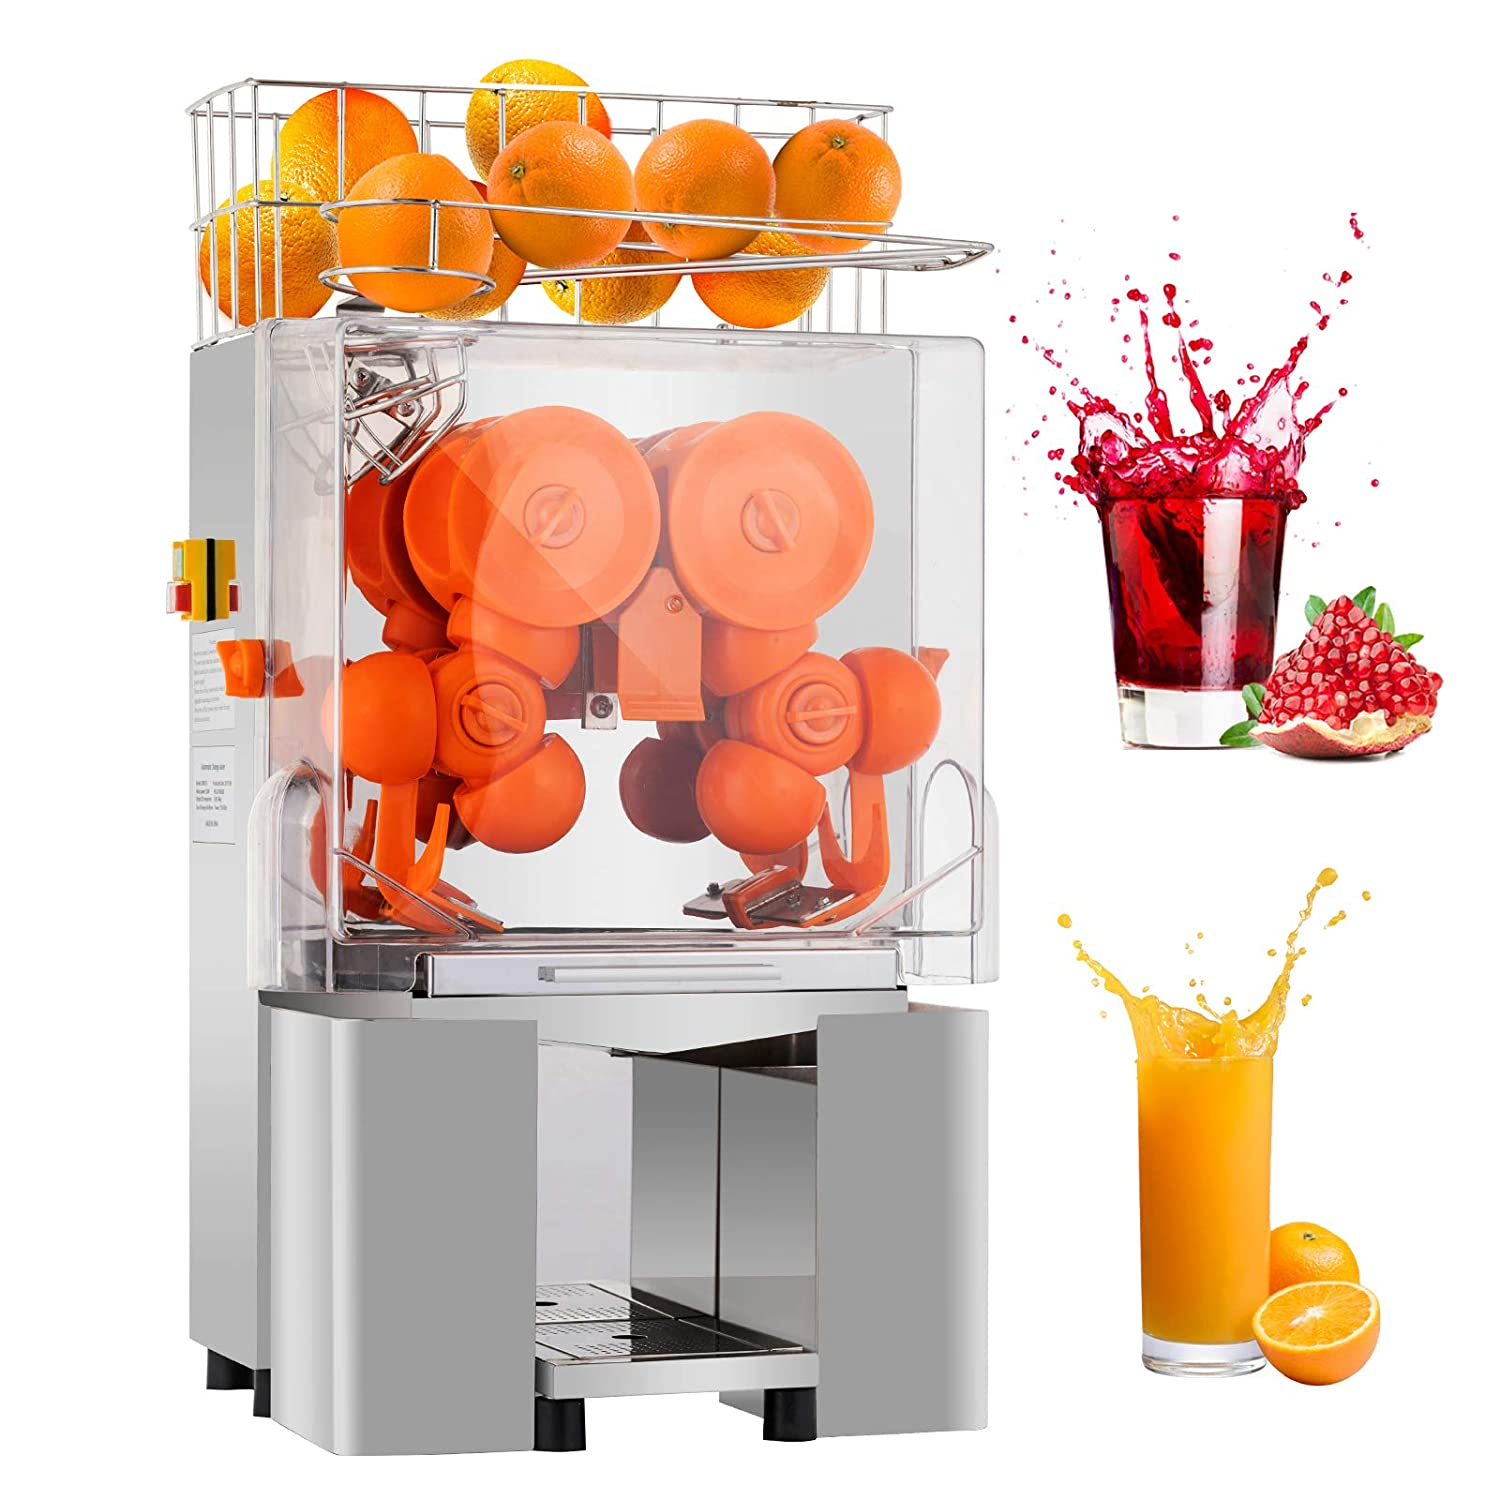 Commercial Orange Juicer Machine Automatic Citrus Juicer Electric Juice Squeezer Lemonade Making Machine Heavy Duty Stainless Steel with Bins